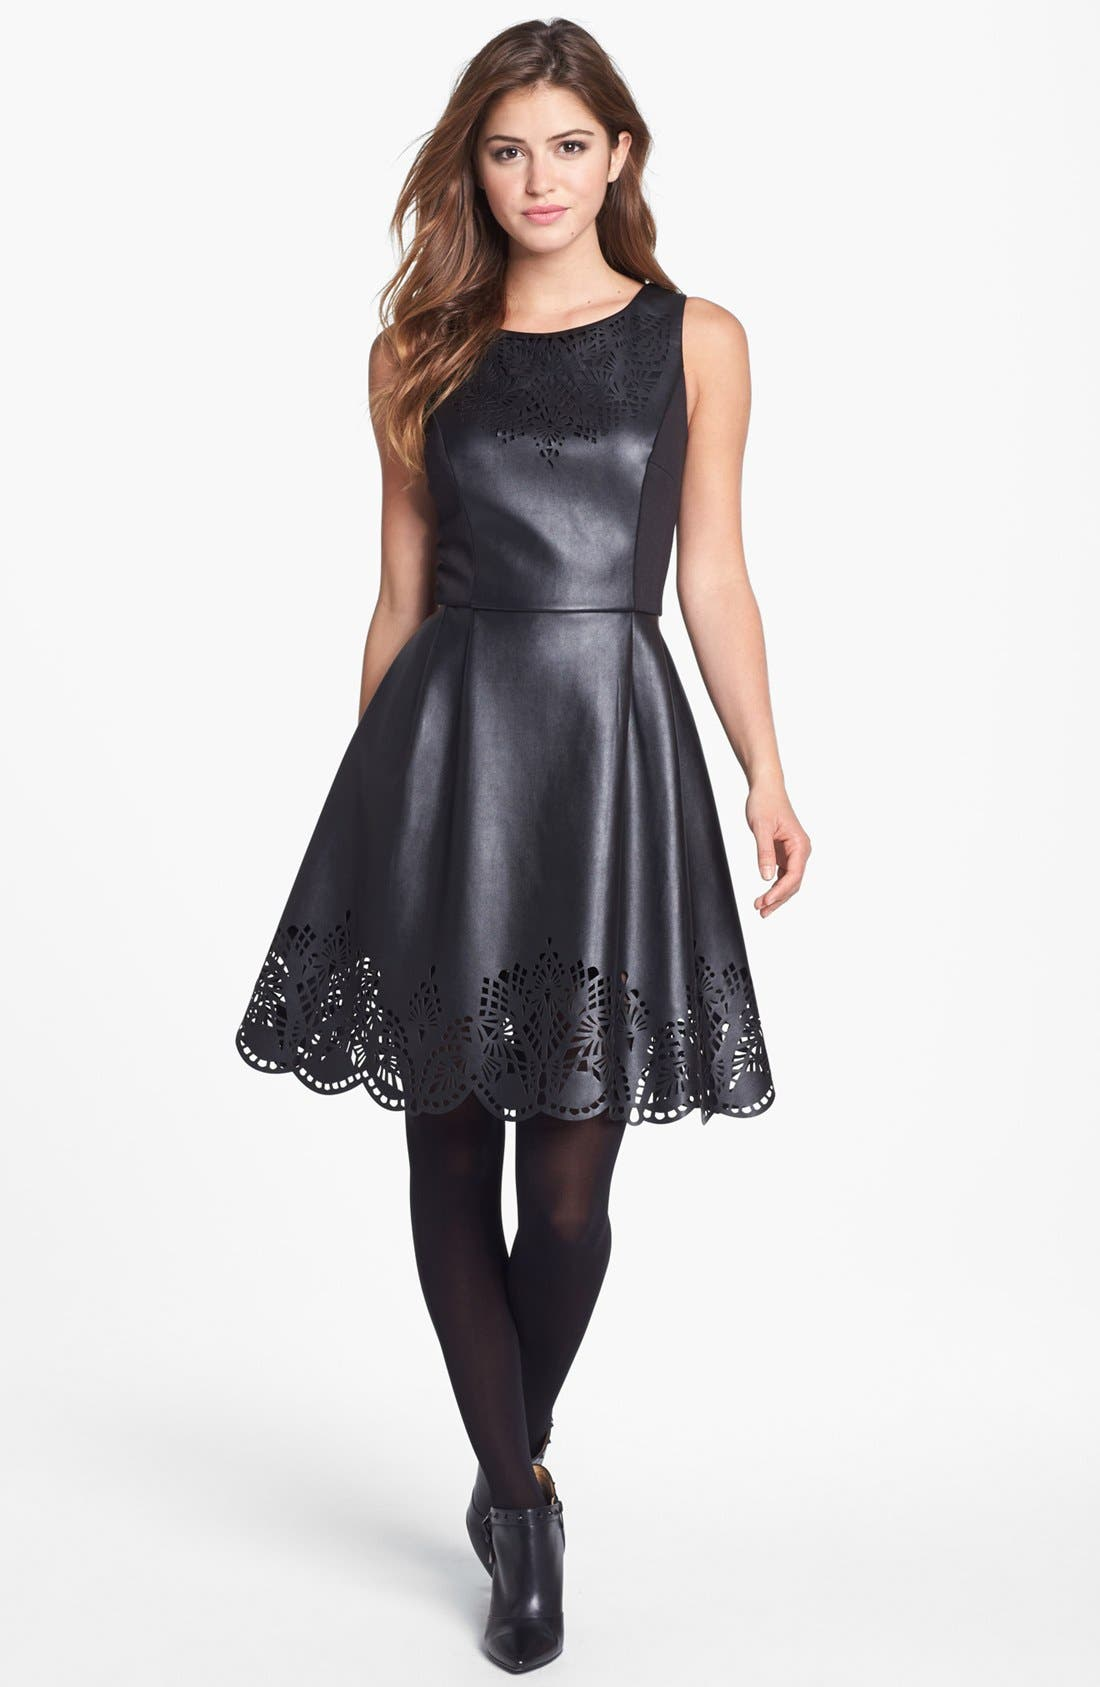 Alternate Image 1 Selected - Betsey Johnson Laser Cut Faux Leather Fit & Flare Dress (Online Only)